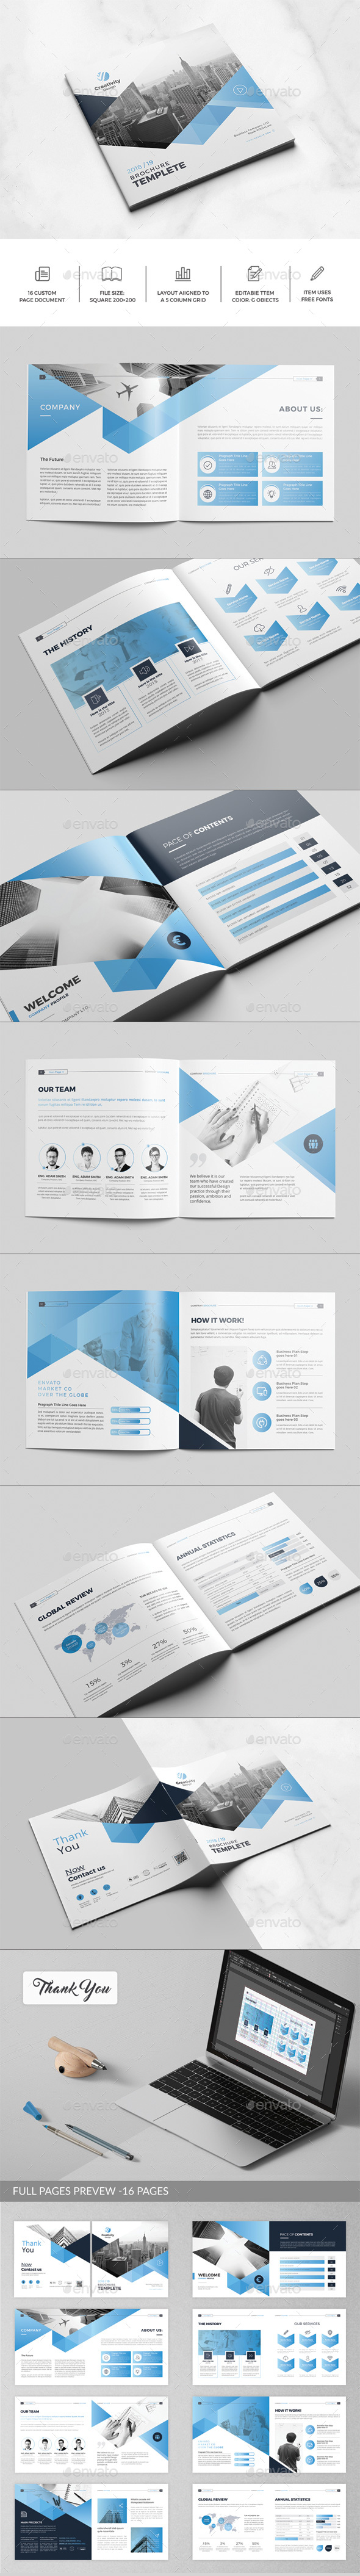 Company Profile Square Brochure - Corporate Brochures